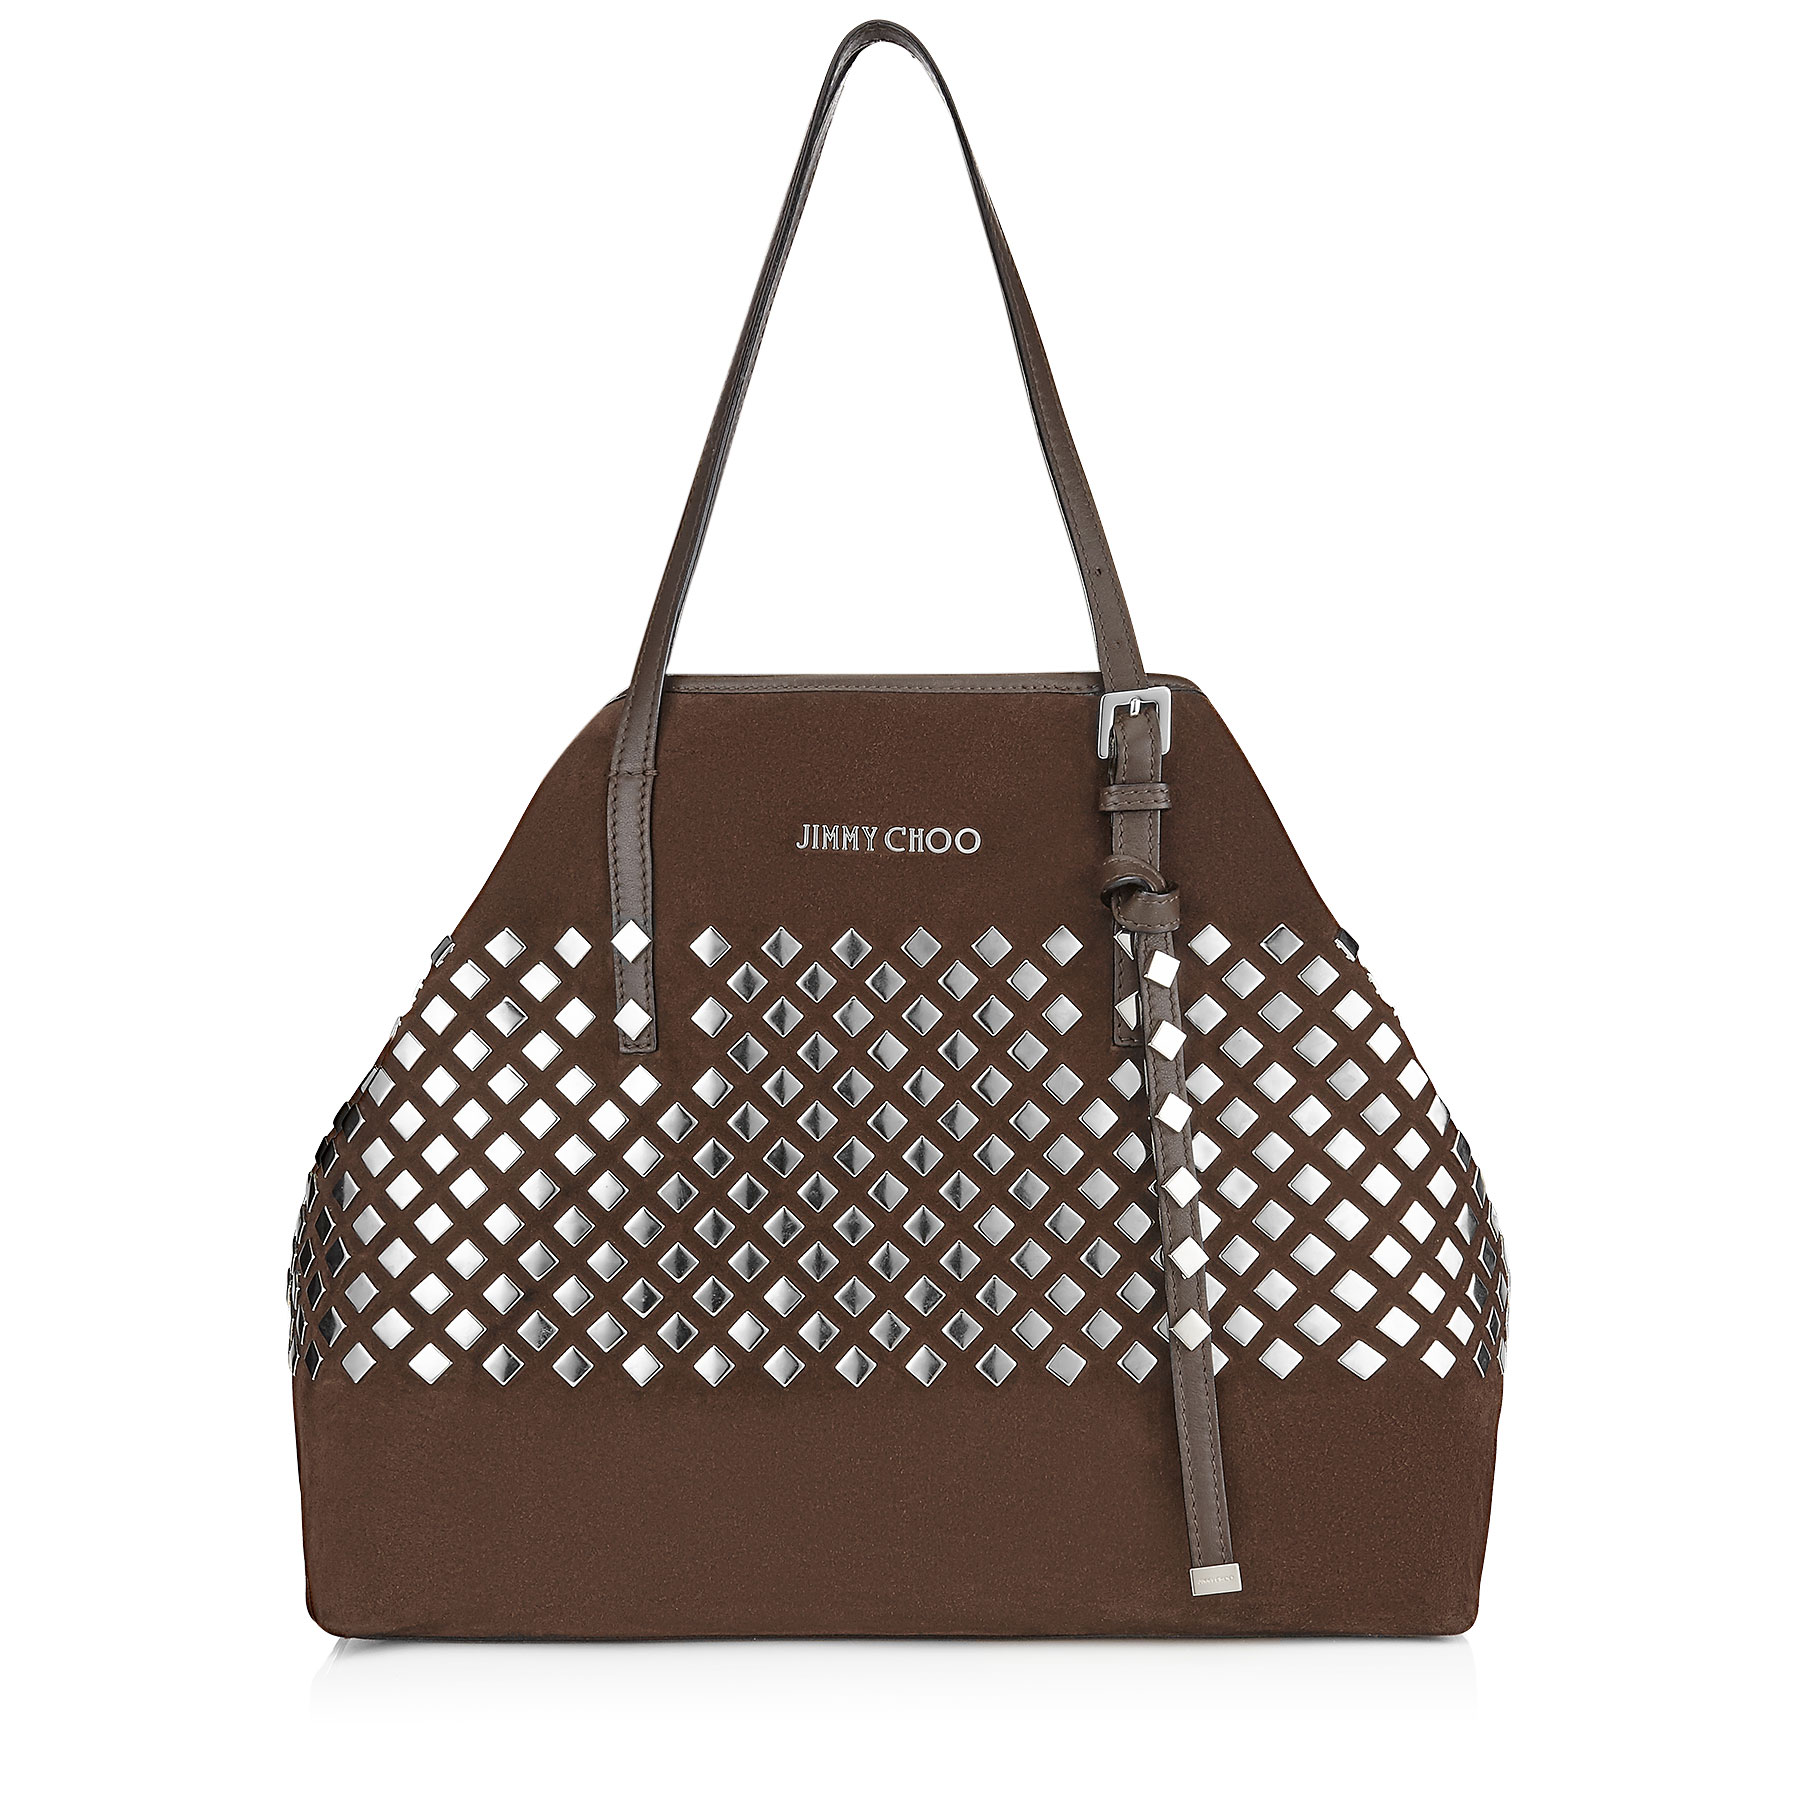 SASHA/M Pecan Suede With Square Studded Application Tote Bag